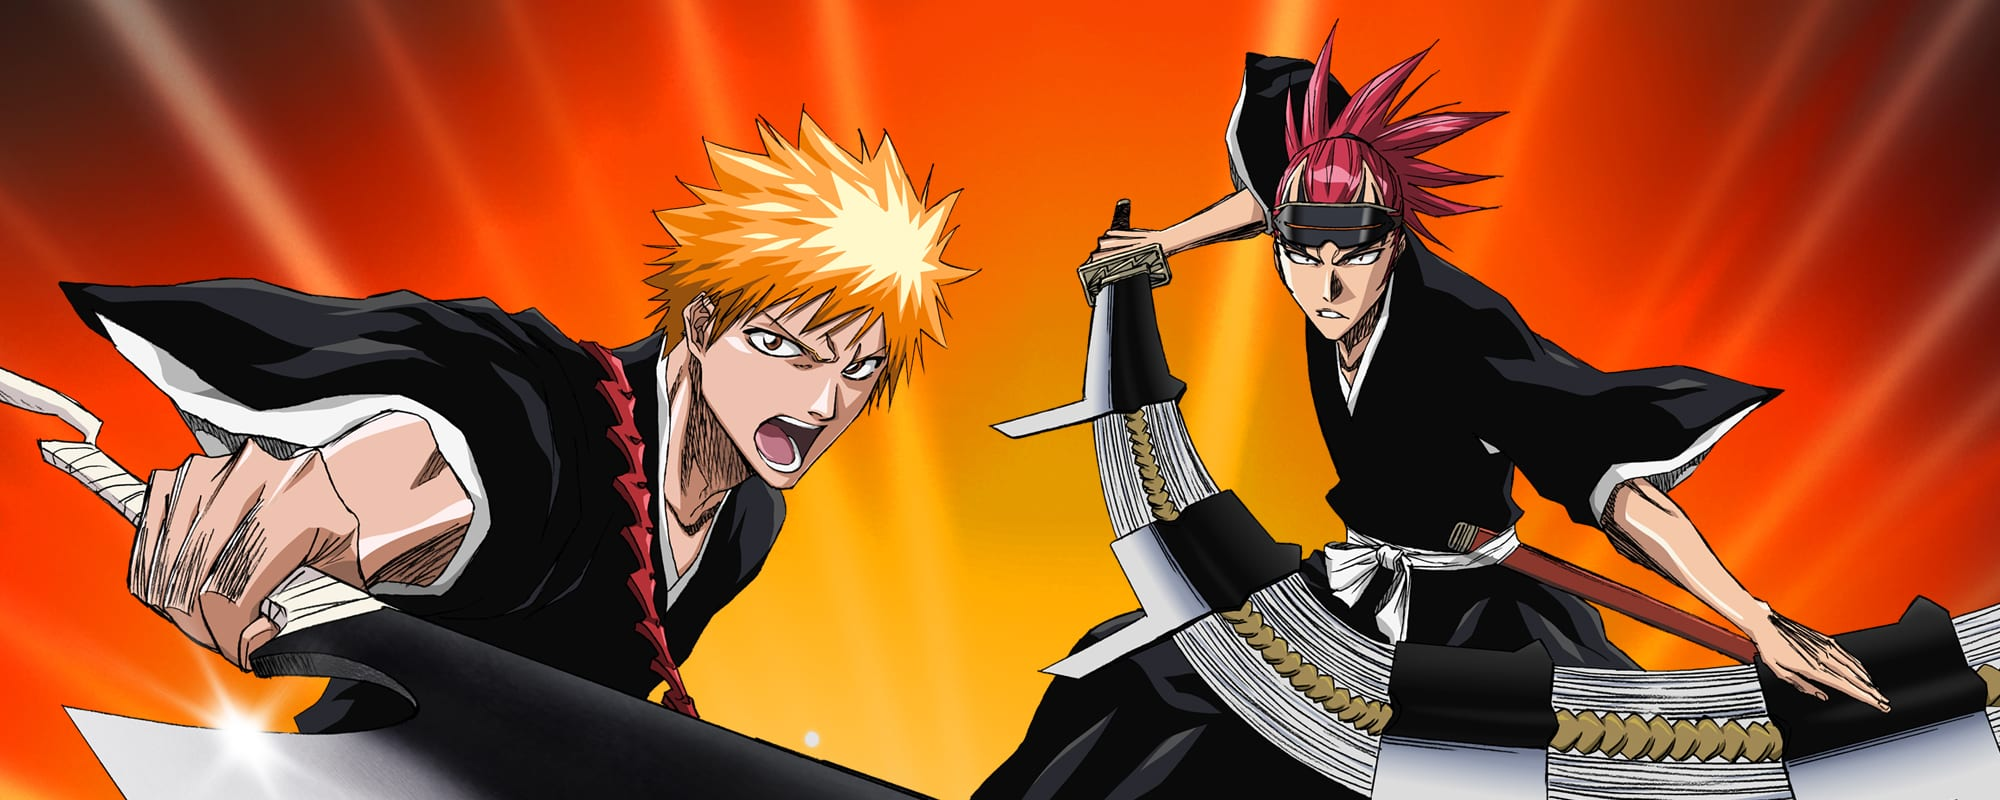 Bleach Anime Return Confirmed! Thousand Year Blood War Arc To Be Adapted!